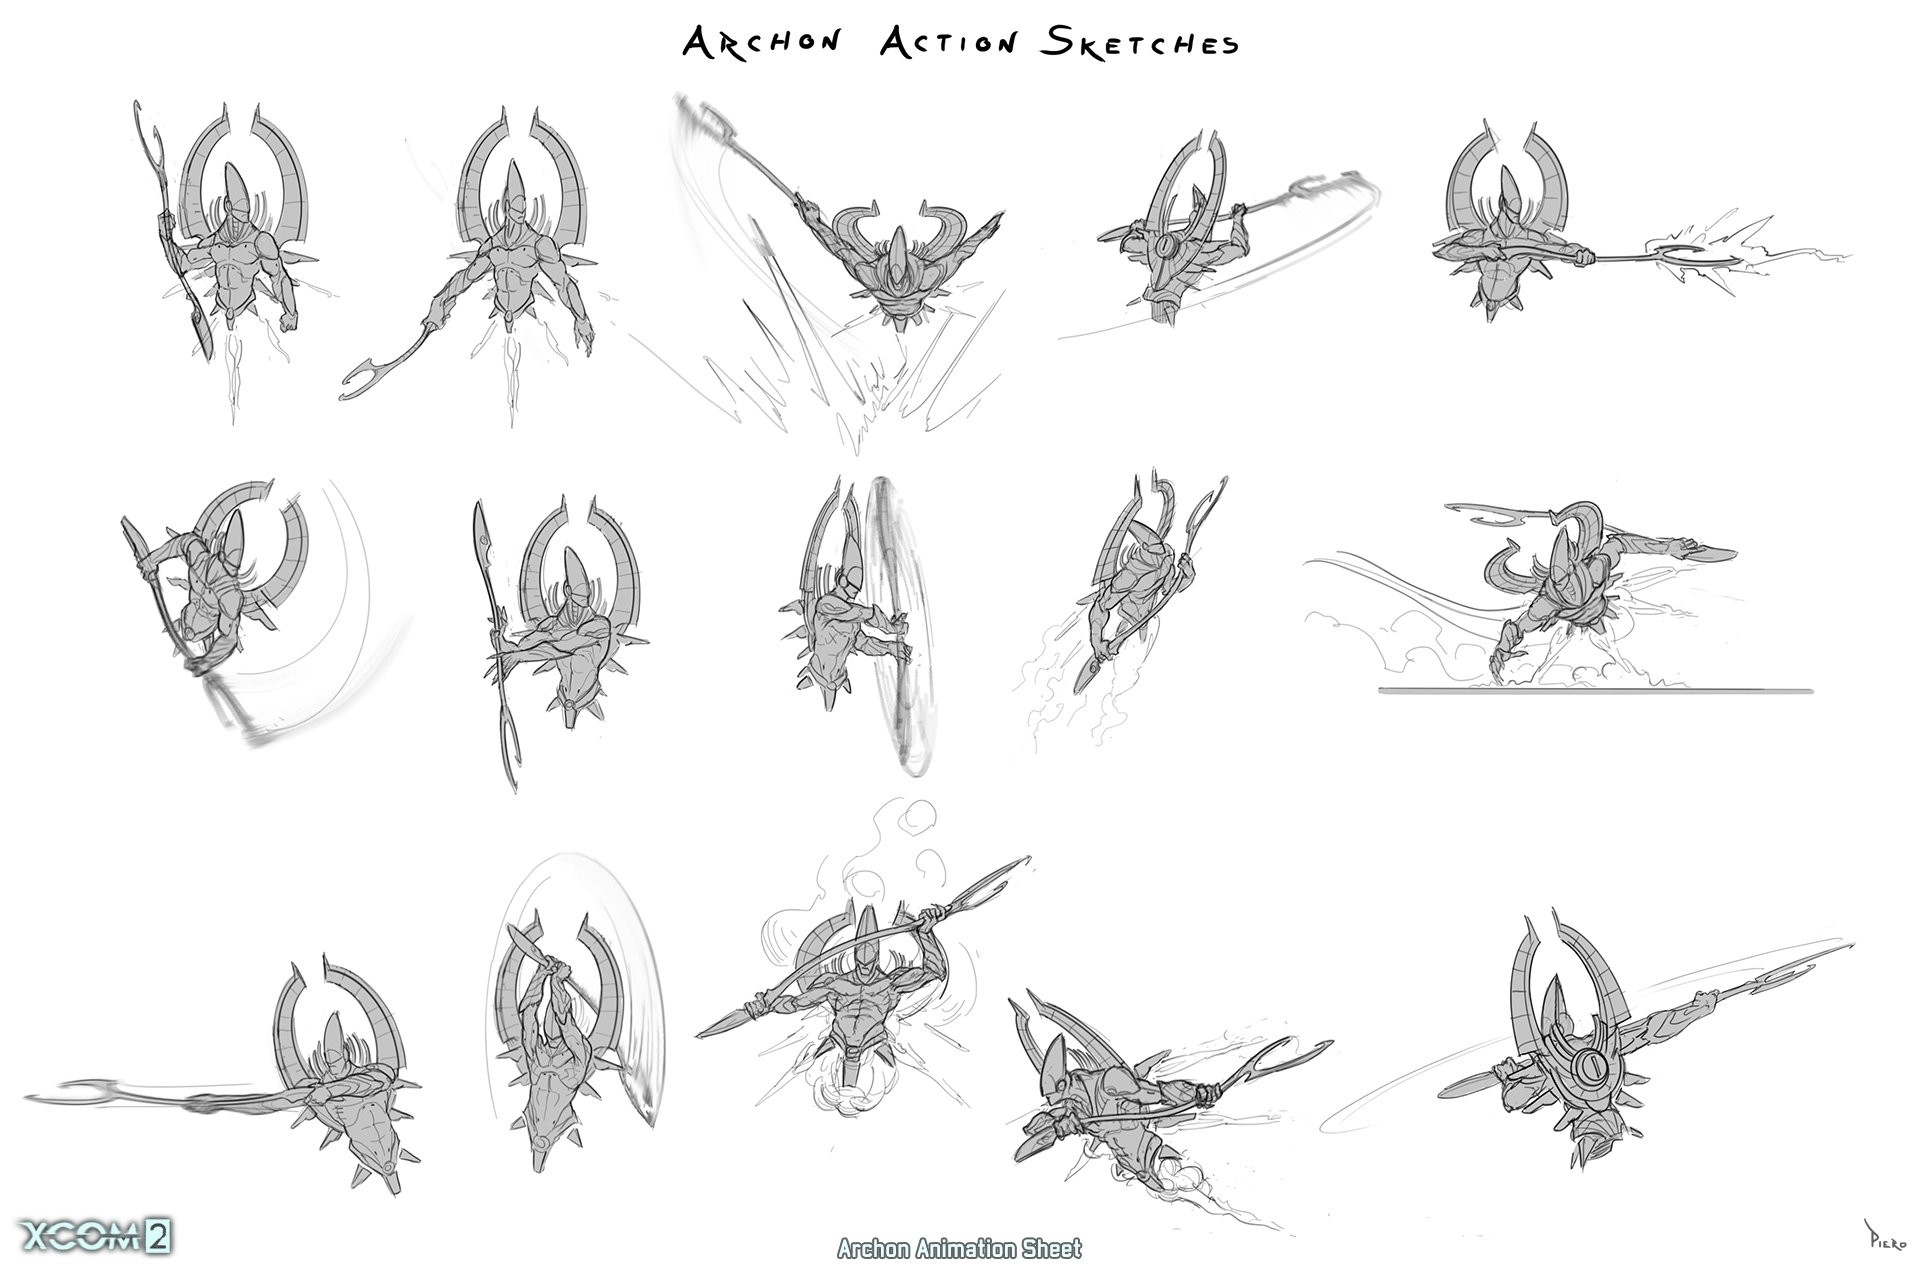 Piero macgowan xcom2 30 archon action sketches piero macgowan